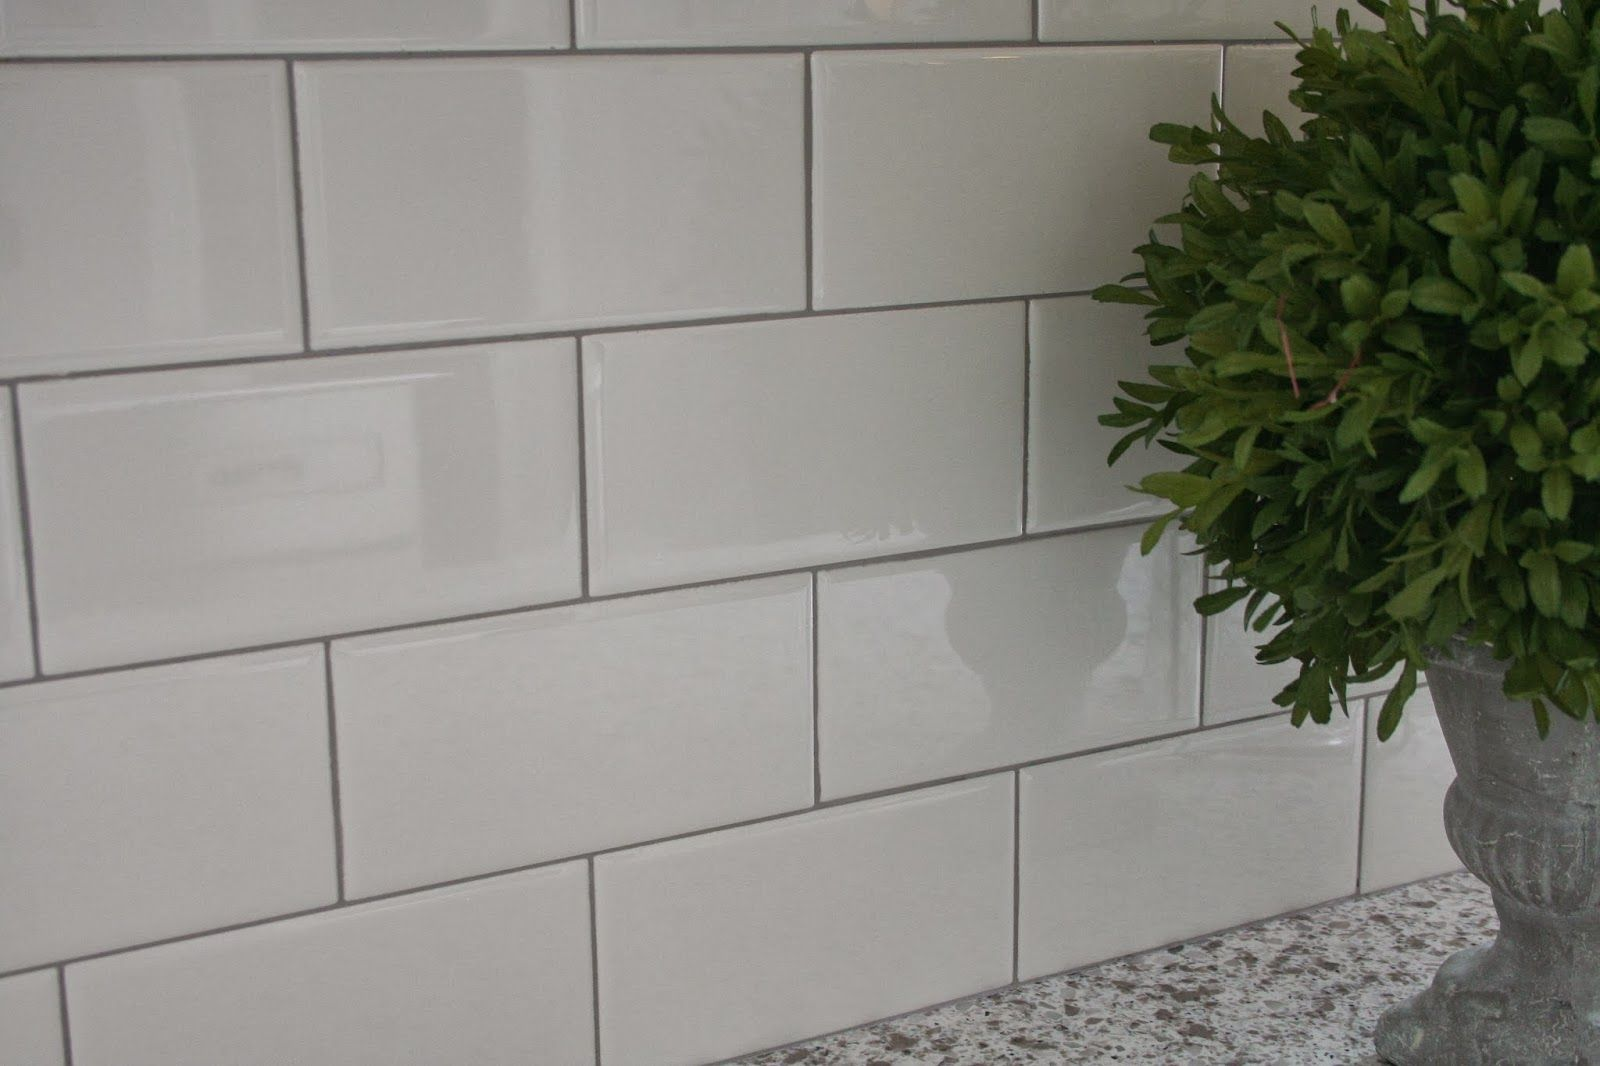 Delorean gray grout with white subway tile tile White subway tile